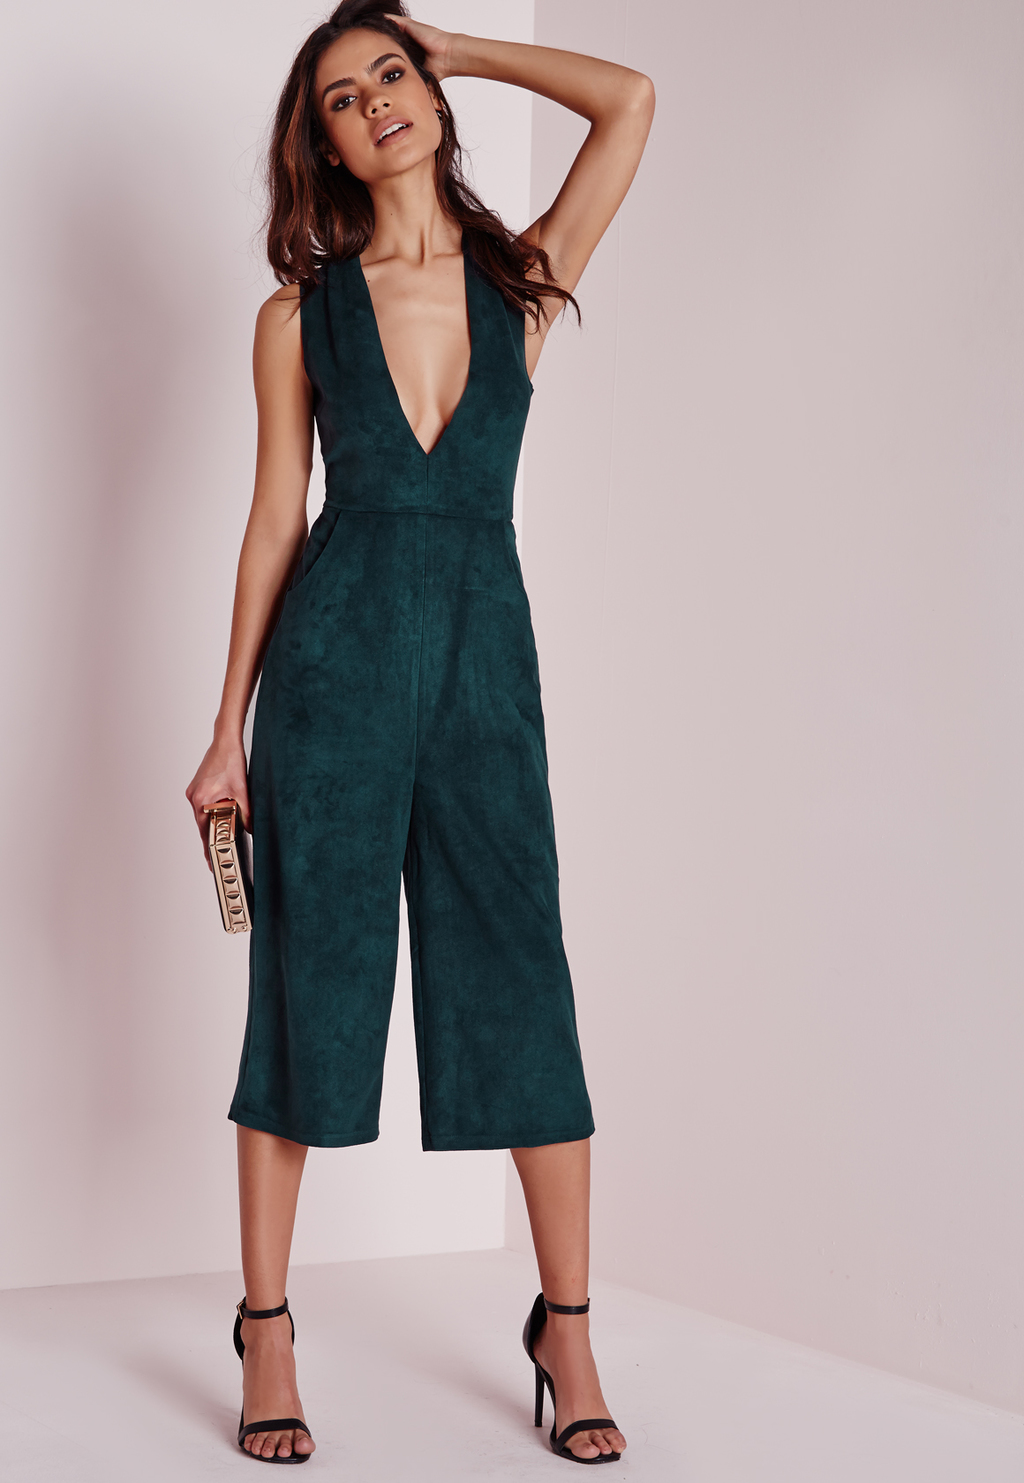 Faux Suede Culotte Jumpsuit Teal, Blue - neckline: v-neck; fit: tailored/fitted; pattern: plain; sleeve style: sleeveless; length: below the knee; predominant colour: dark green; occasions: evening; fibres: polyester/polyamide - stretch; sleeve length: sleeveless; style: jumpsuit; pattern type: fabric; texture group: suede; season: a/w 2015; wardrobe: event